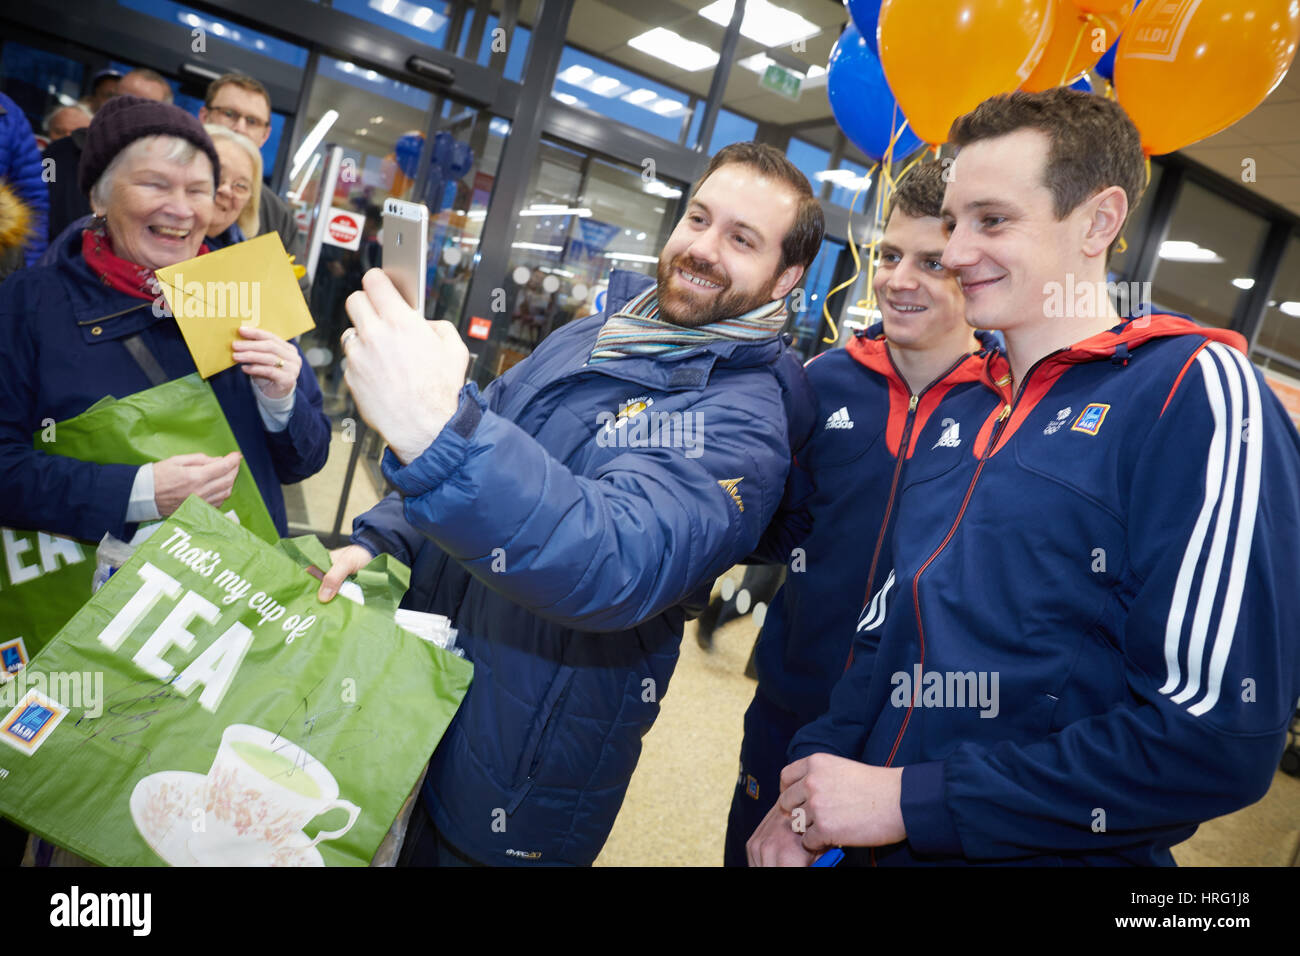 Team GB Triathlete Jonny and Alistair Brownlee aka The Brownlee Brothers open Aldi's new store in Guiseley, - Stock Image